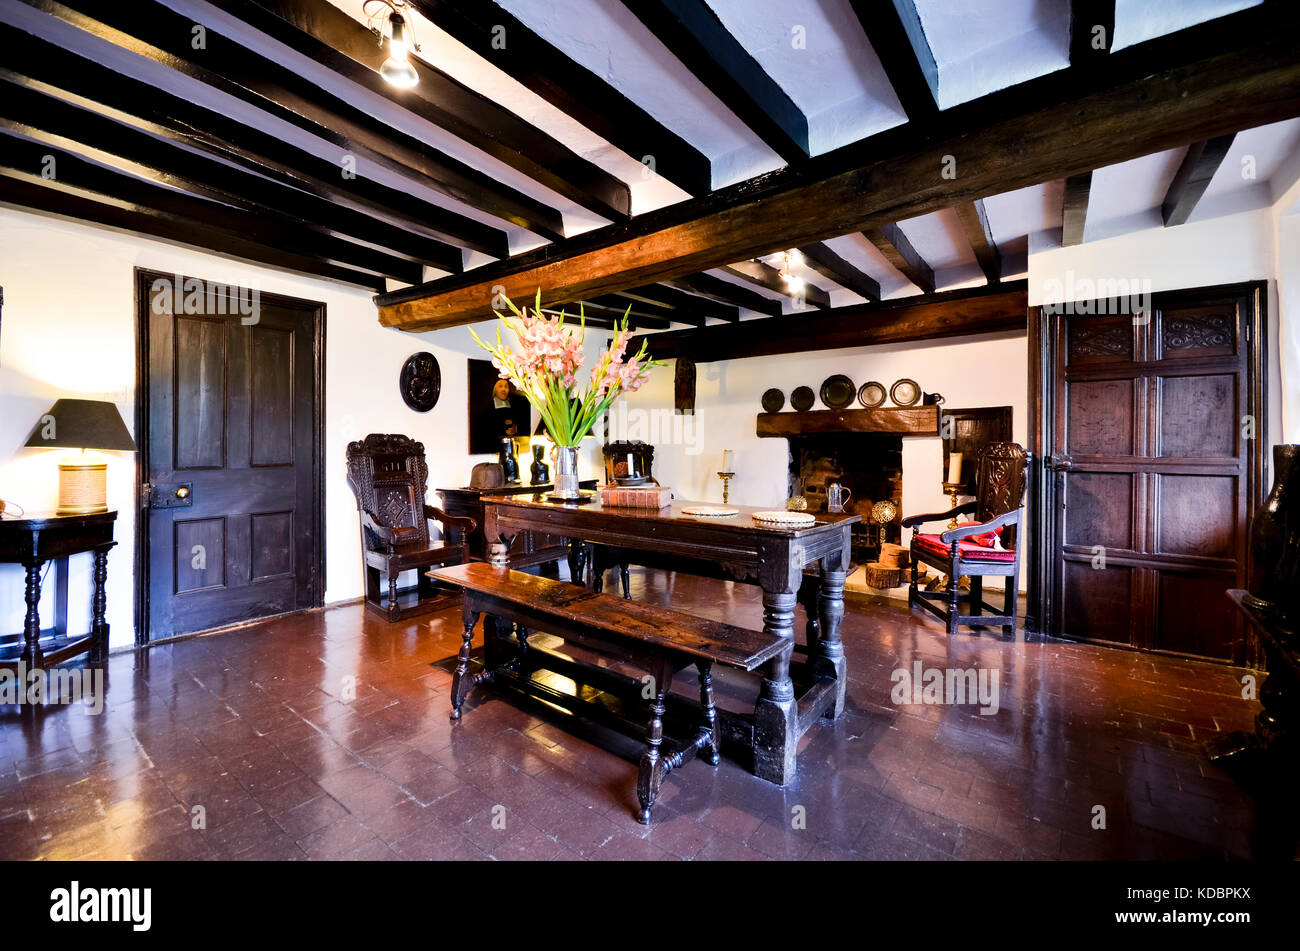 Antique furniture in period property - Stock Image